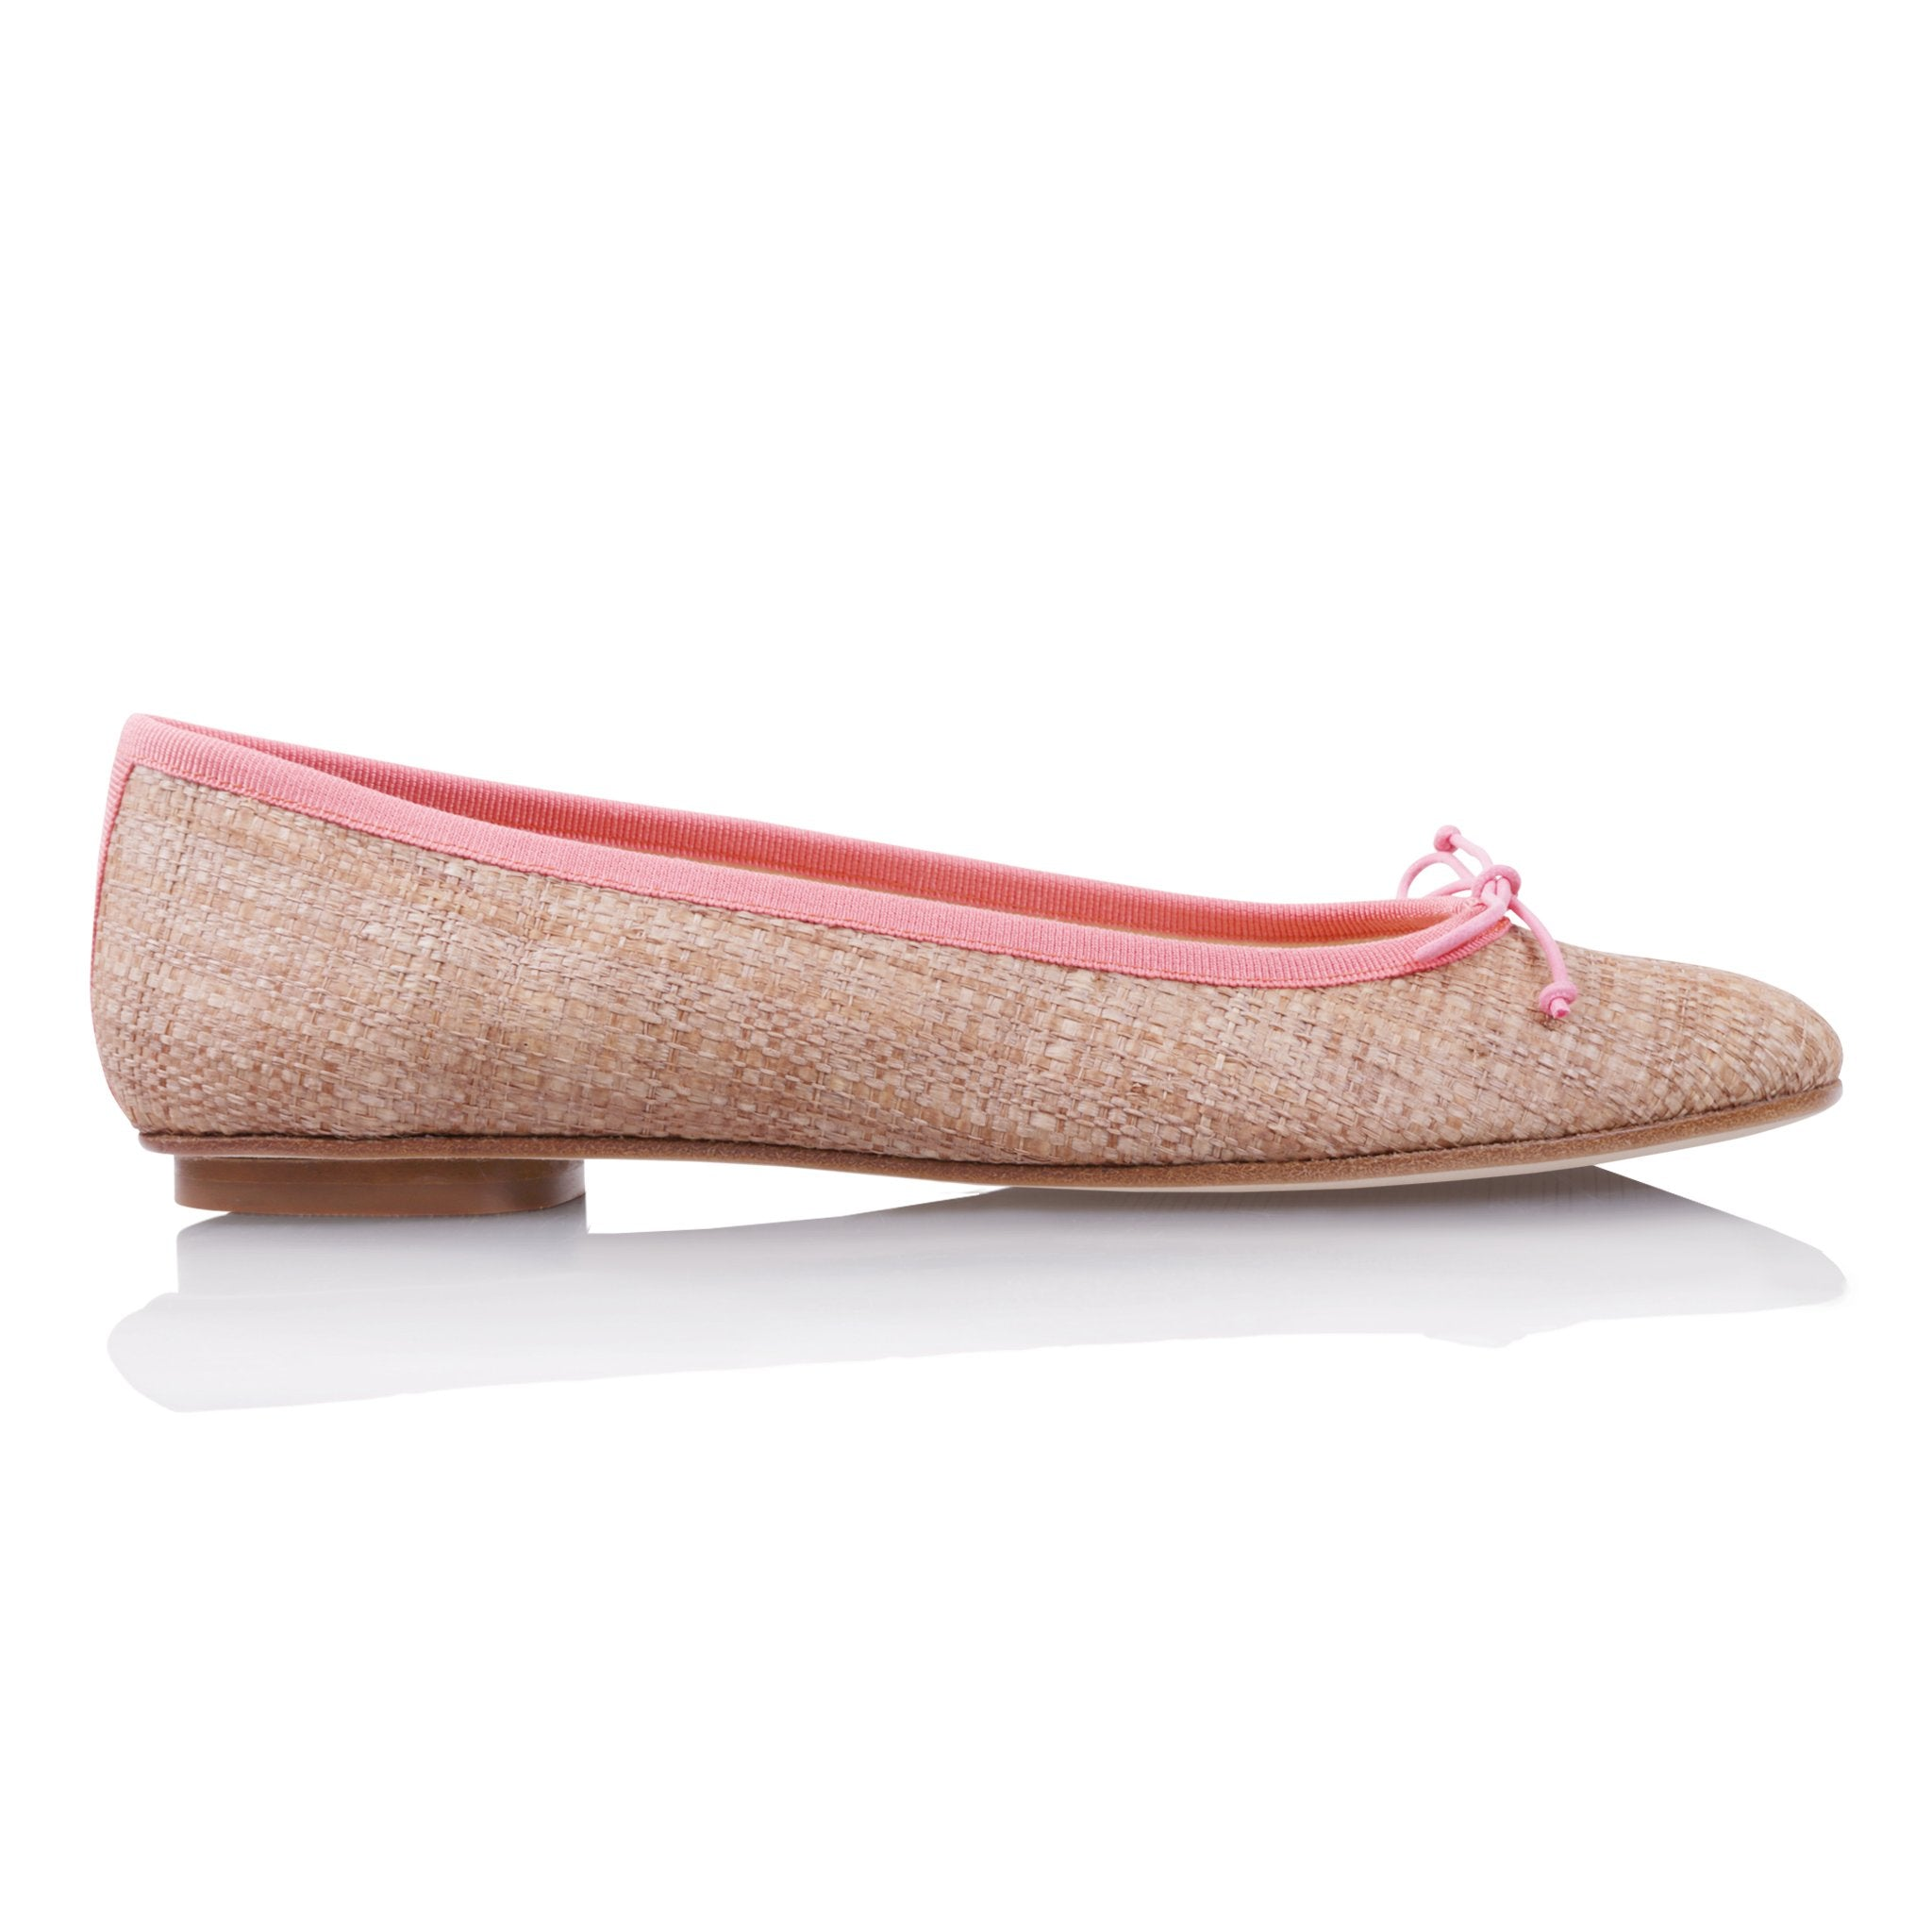 ROMA - Raffia Natural + Drawstring Coral Bow, VIAJIYU - Women's Hand Made Sustainable Luxury Shoes. Made in Italy. Made to Order.